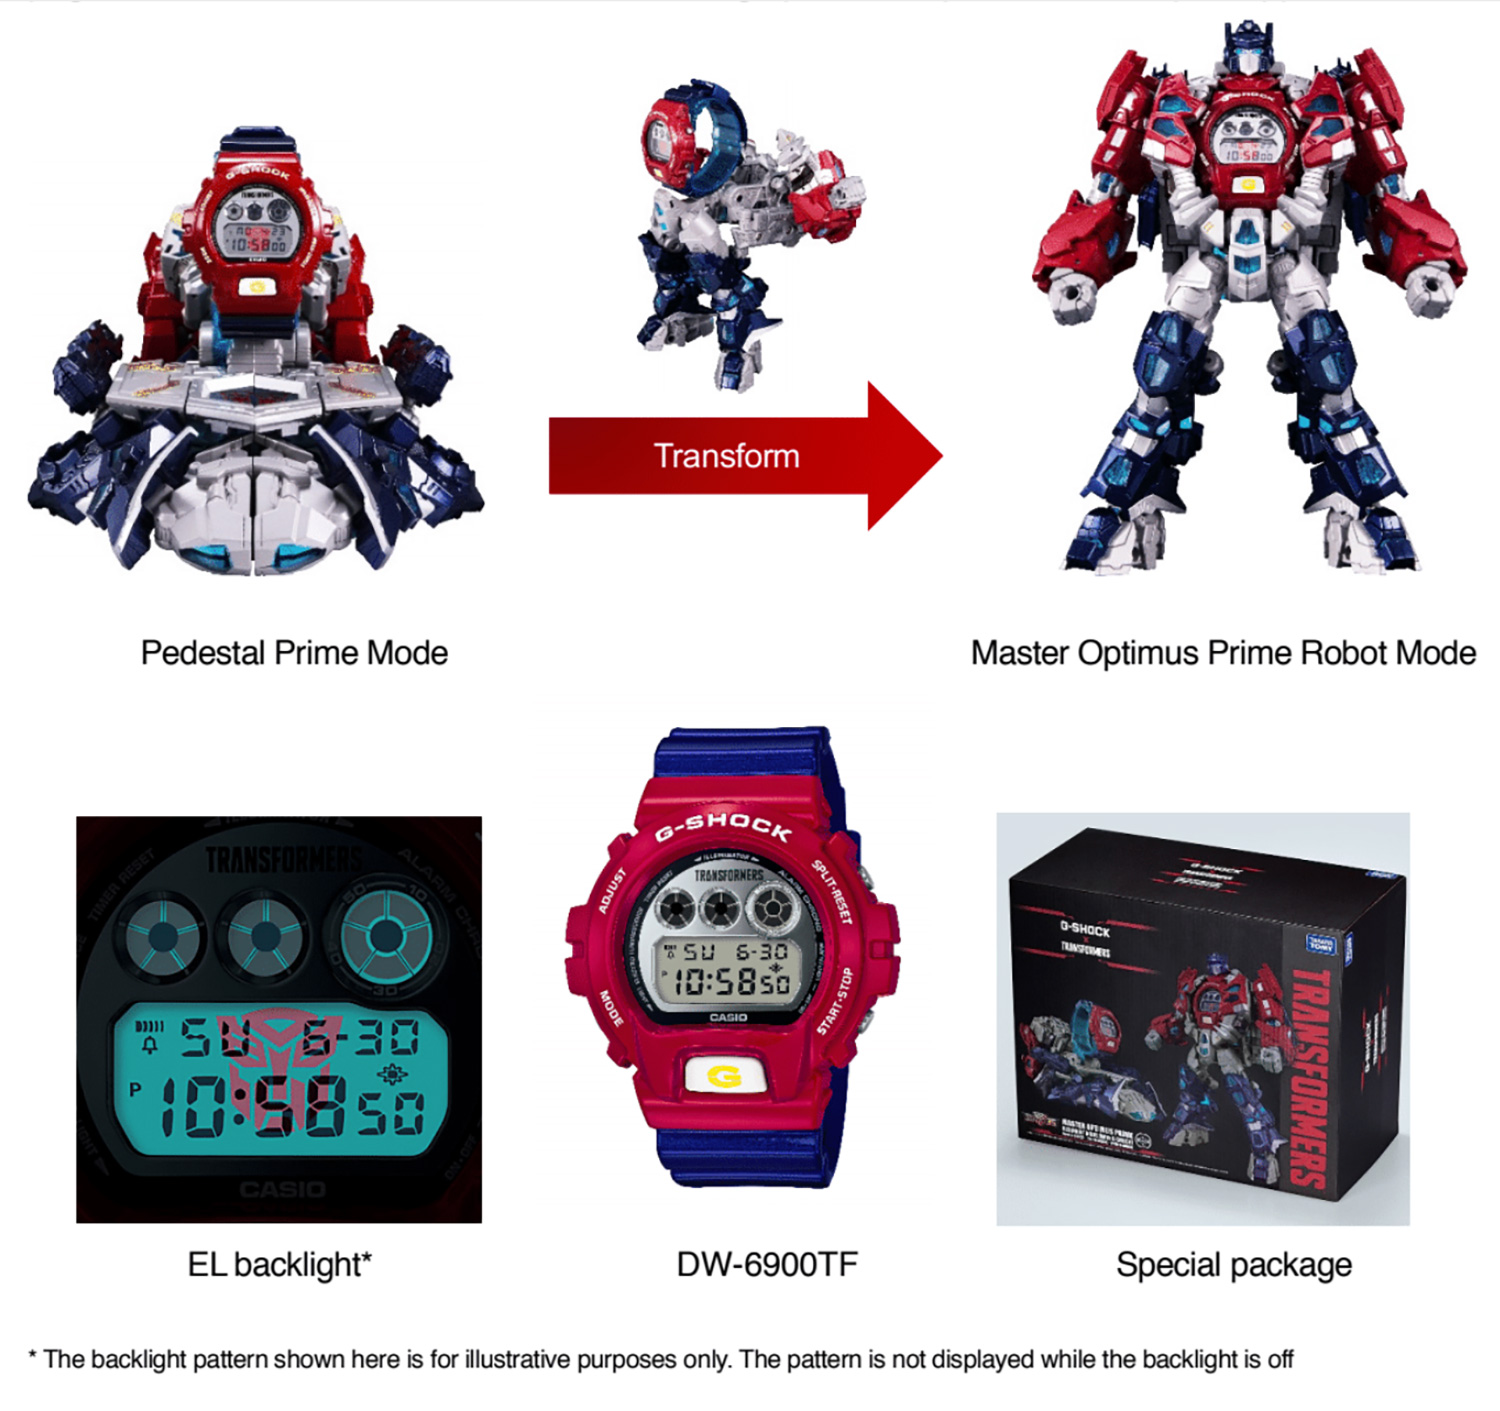 Casio to Release G-SHOCK x TRANSFORMERS Special Collaboration Model in Dec 2018